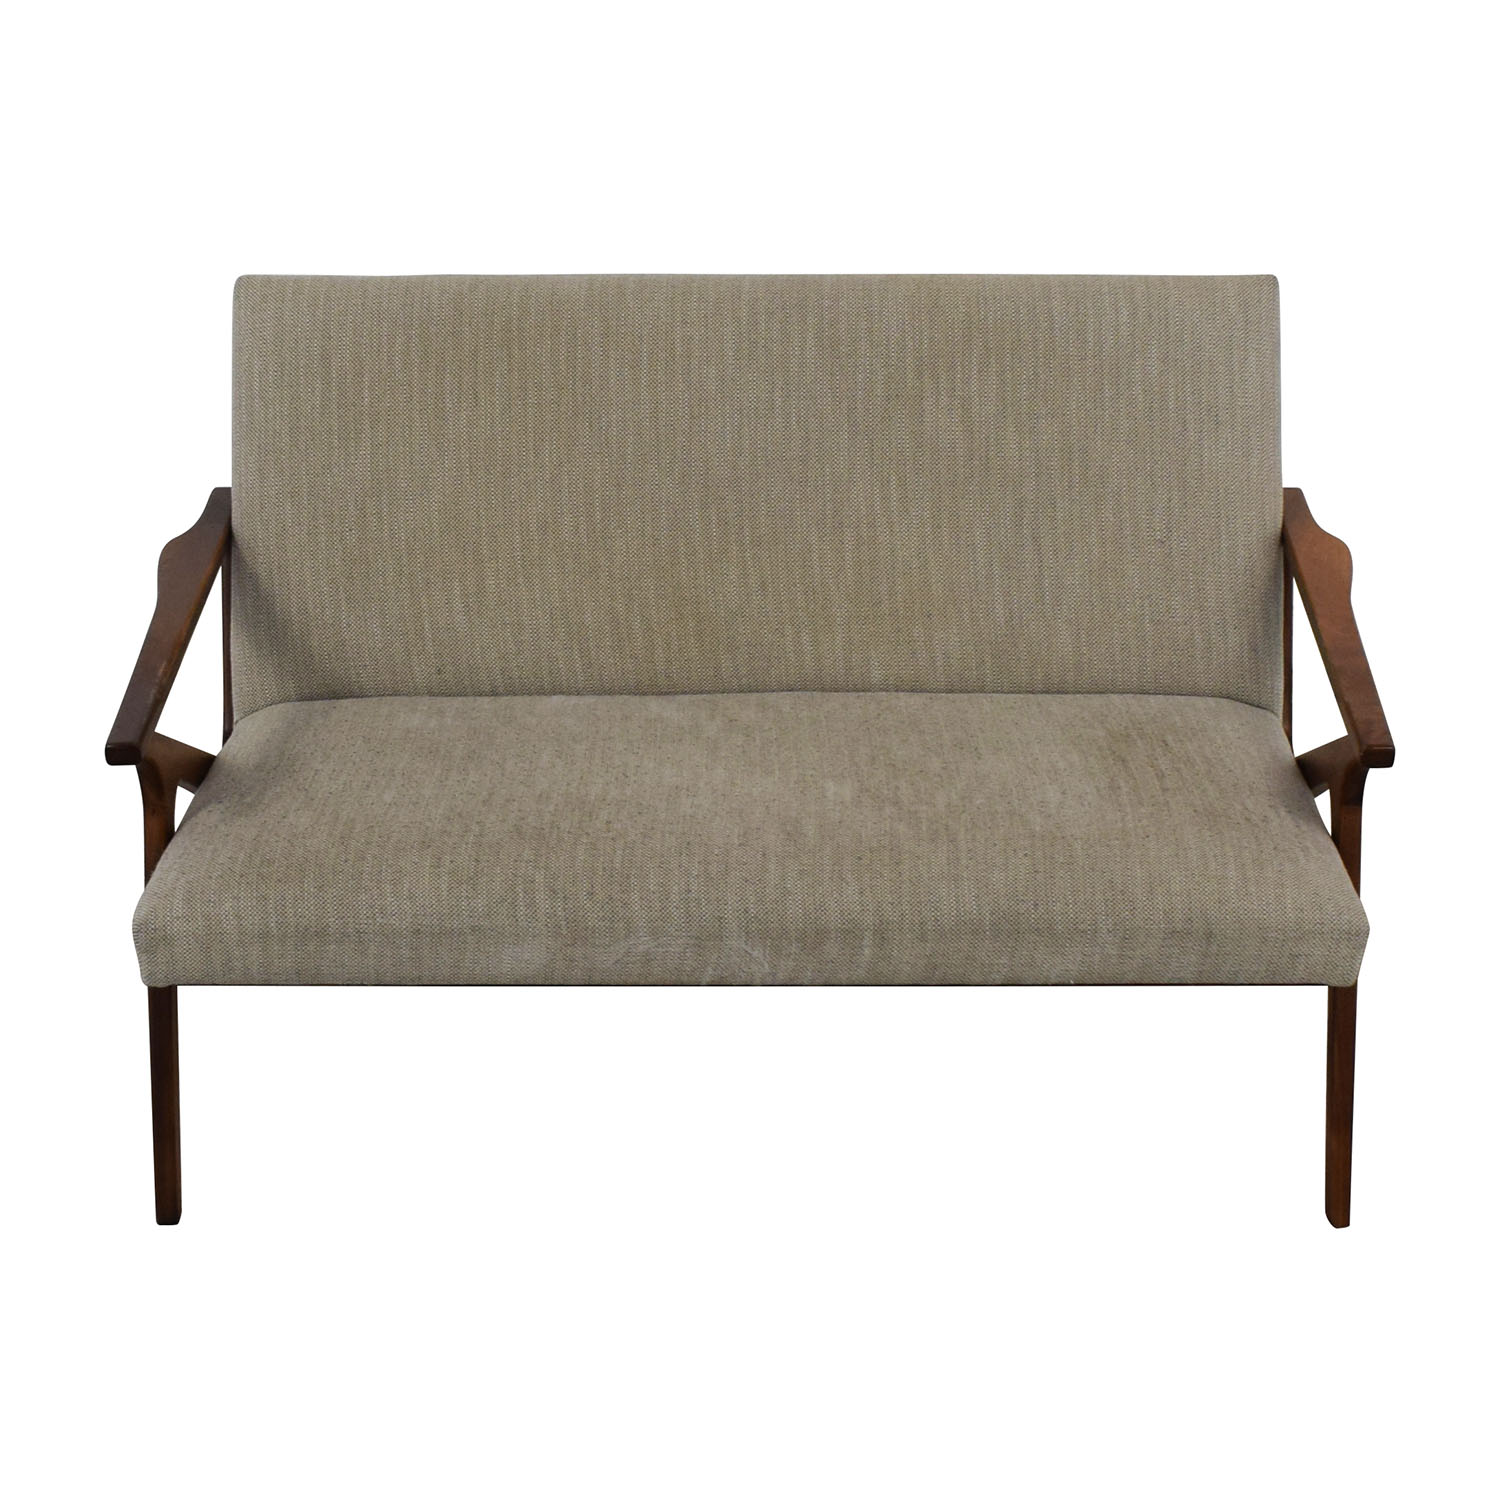 Crate & Barrel Crate & Barrel Cavett Wood Frame Loveseat Loveseats